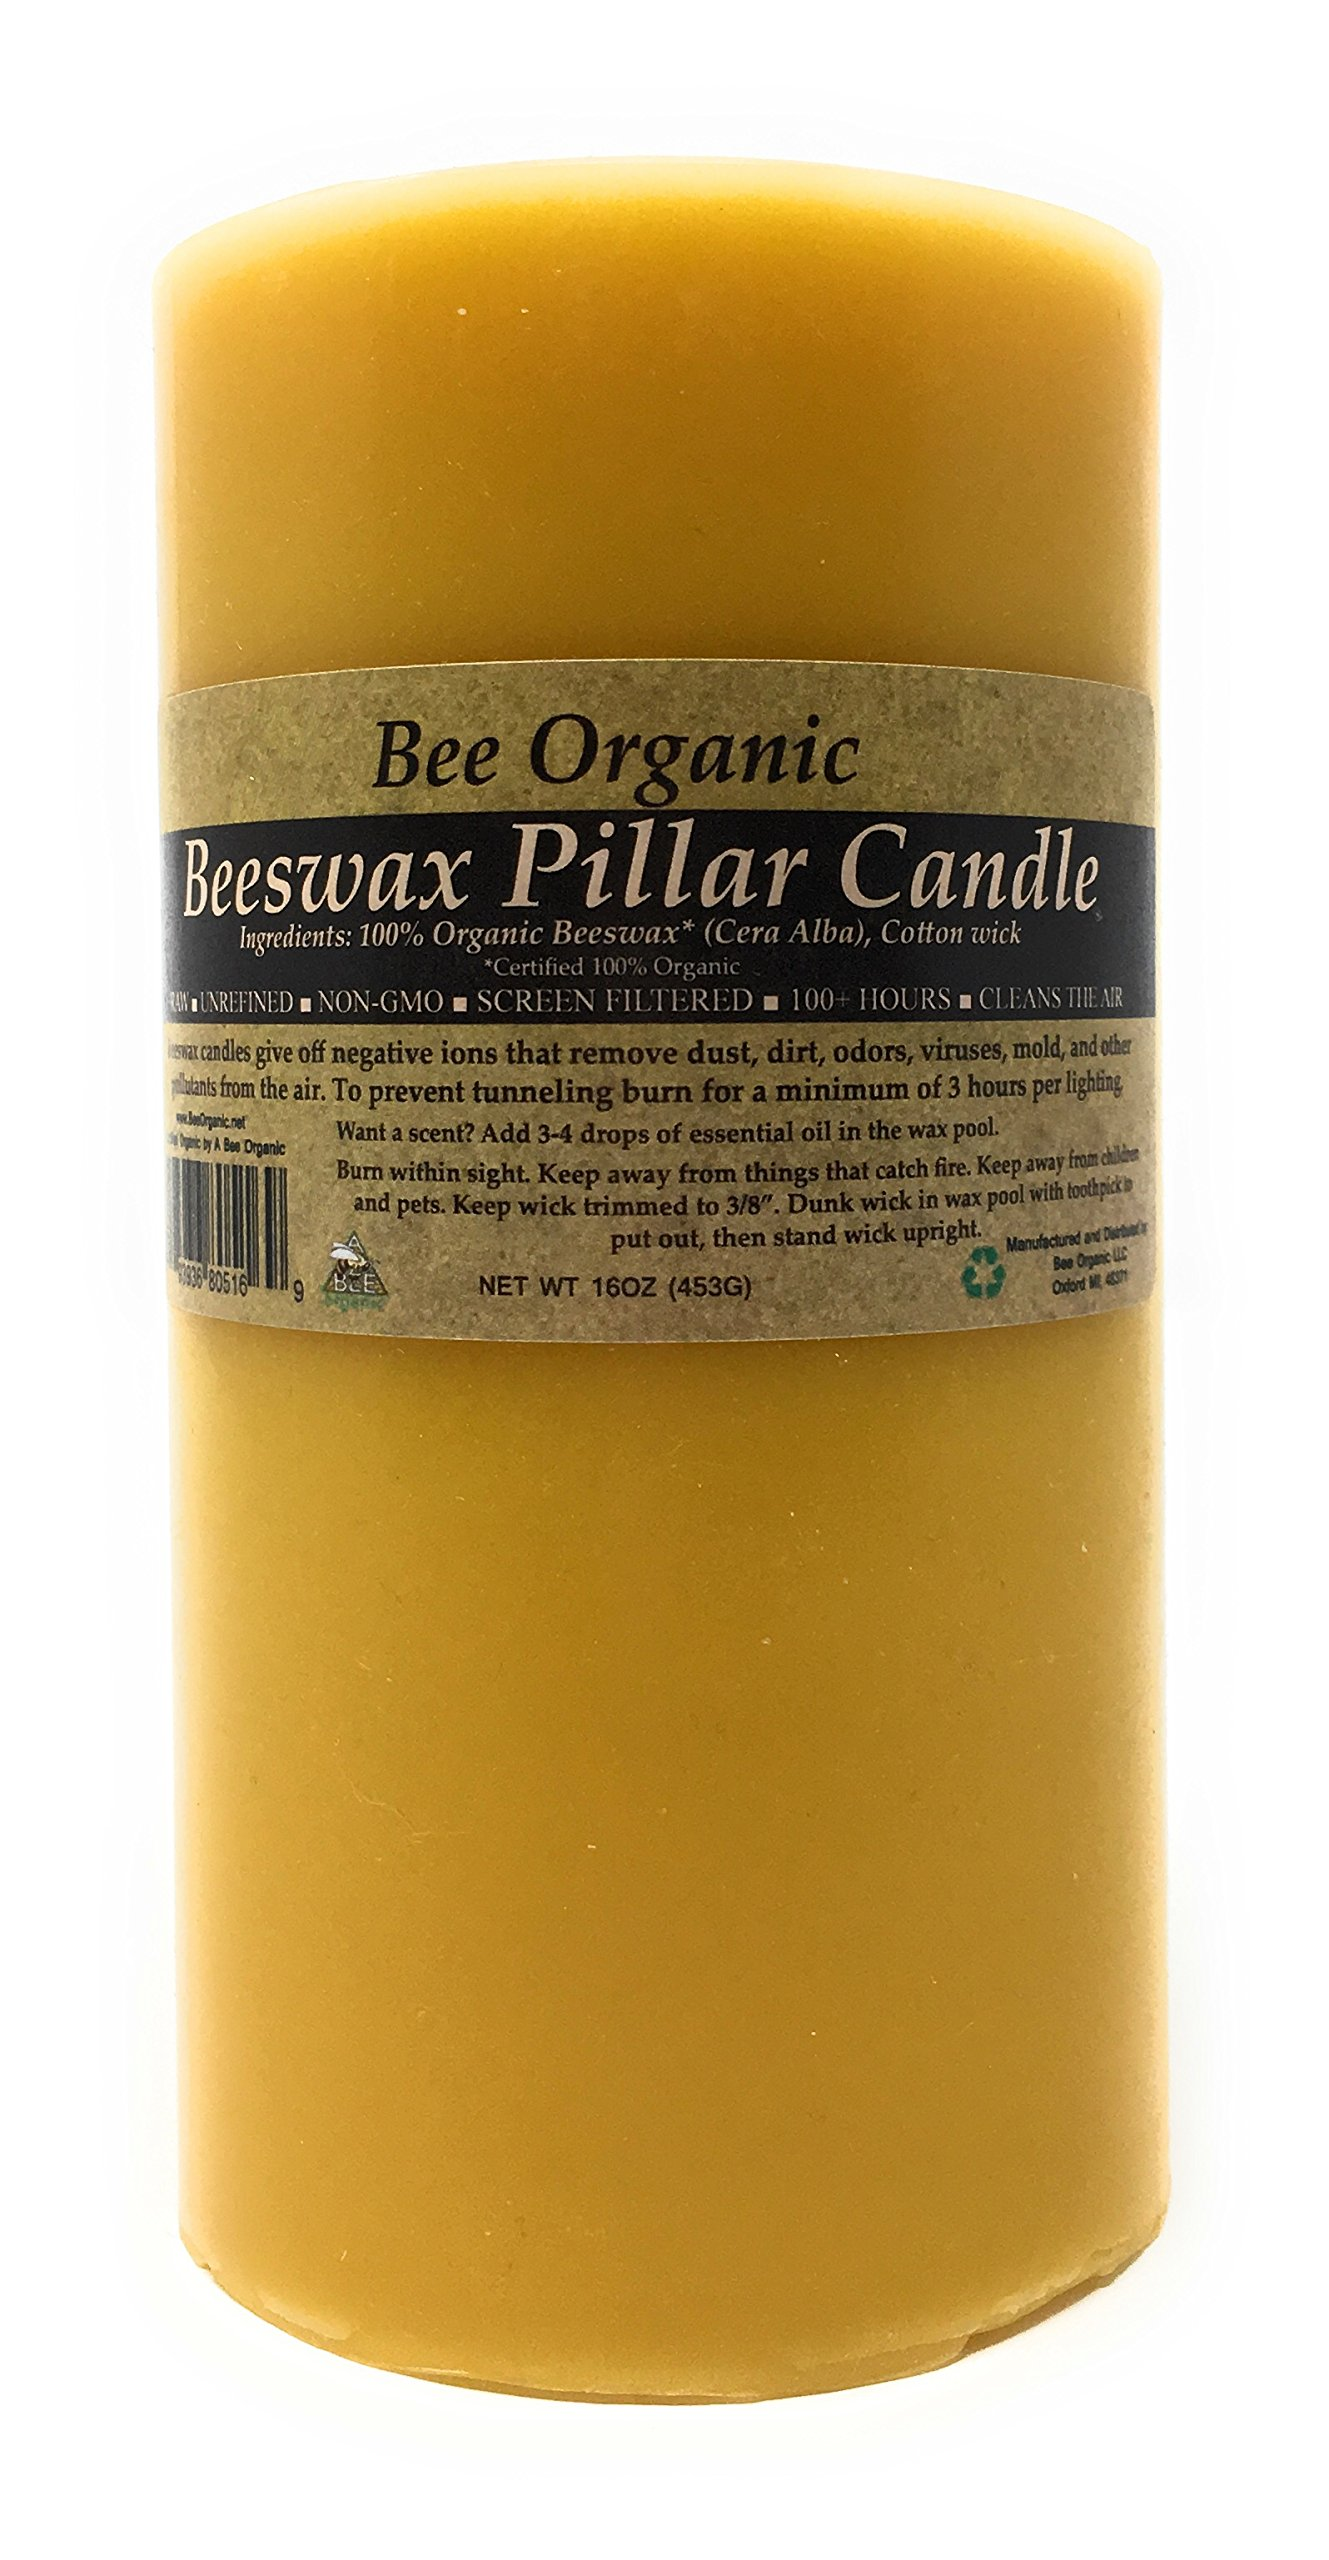 100% Organic Beeswax Pillar Candle, Non-GMO, Raw, Unrefined and Screen Filtered. Unbleached Cotton Wick. (3 x 6)